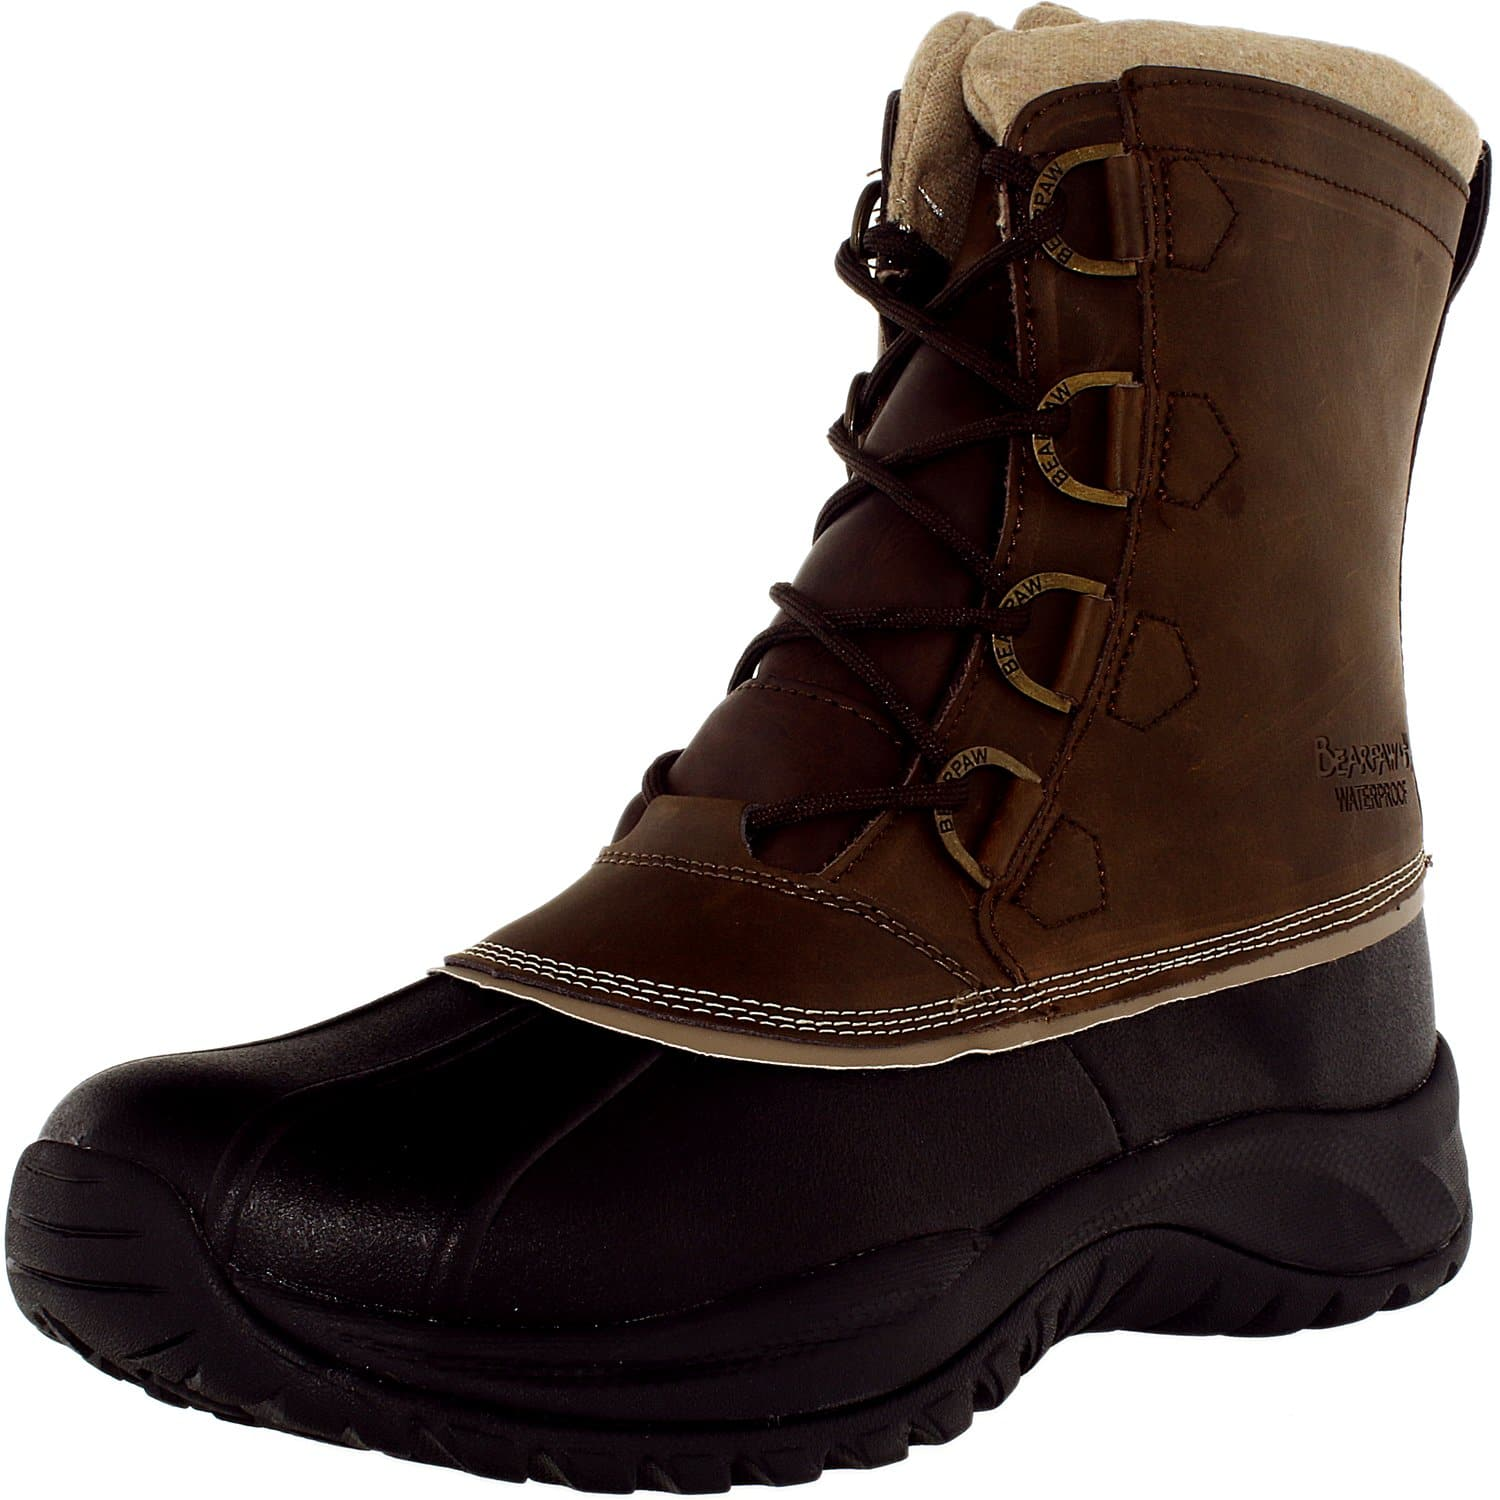 Bearpaw Men's Colton Mid-Calf Leather Boot $ 59.99 on Ebay $59.99